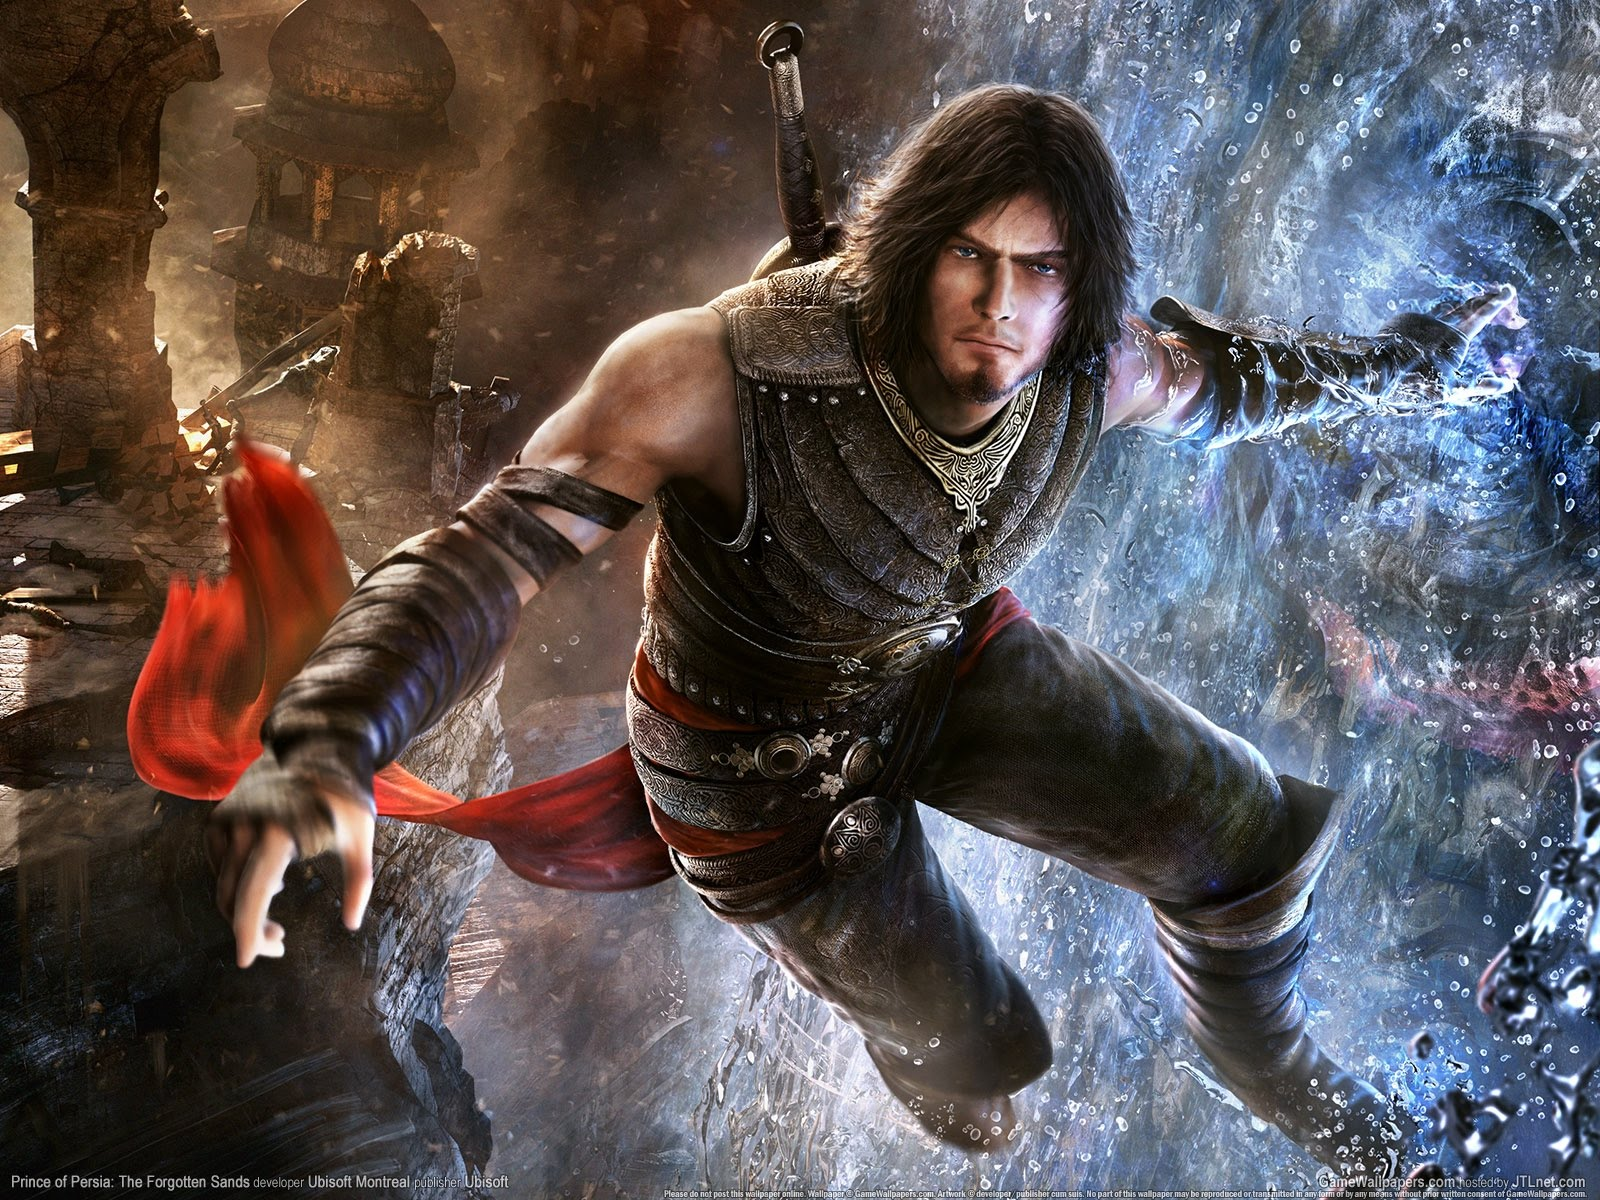 Prince of Persia The Forgotten Sands wallpapers or  - prince of persia the forgotten sands wallpapers